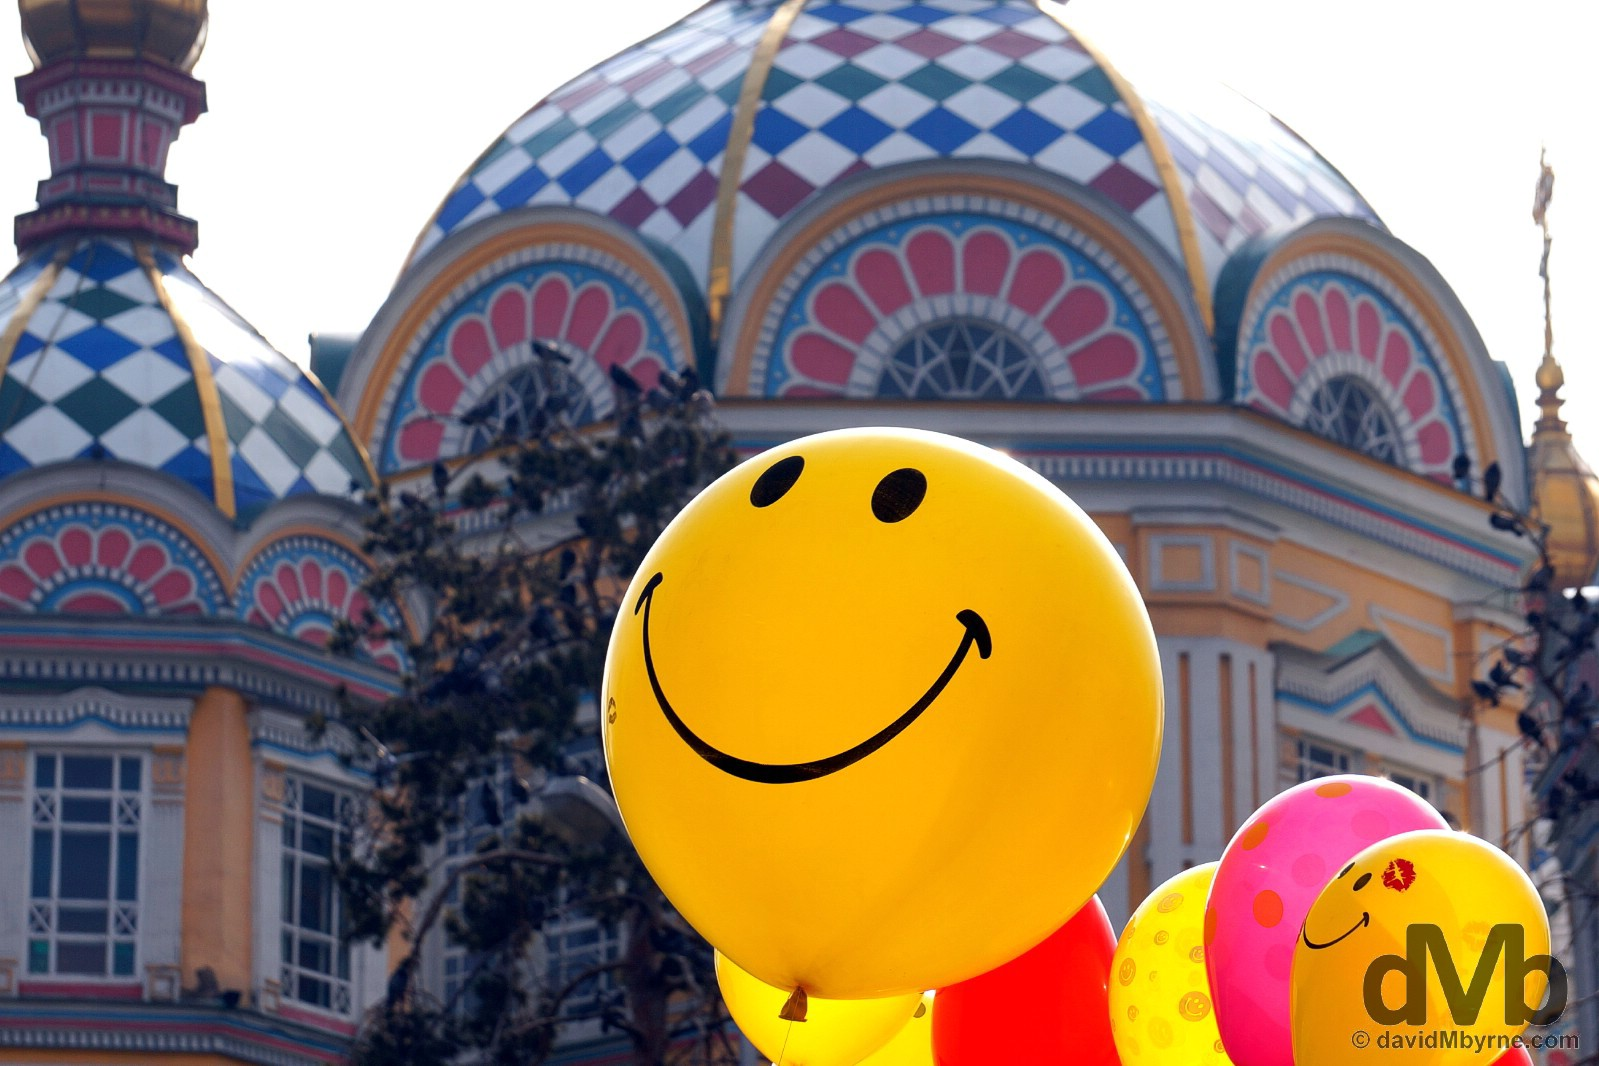 Balloons for sale in front of Zenkov Cathedral in Panfilov Park, Almaty, Kazakhstan. February 19, 2015.